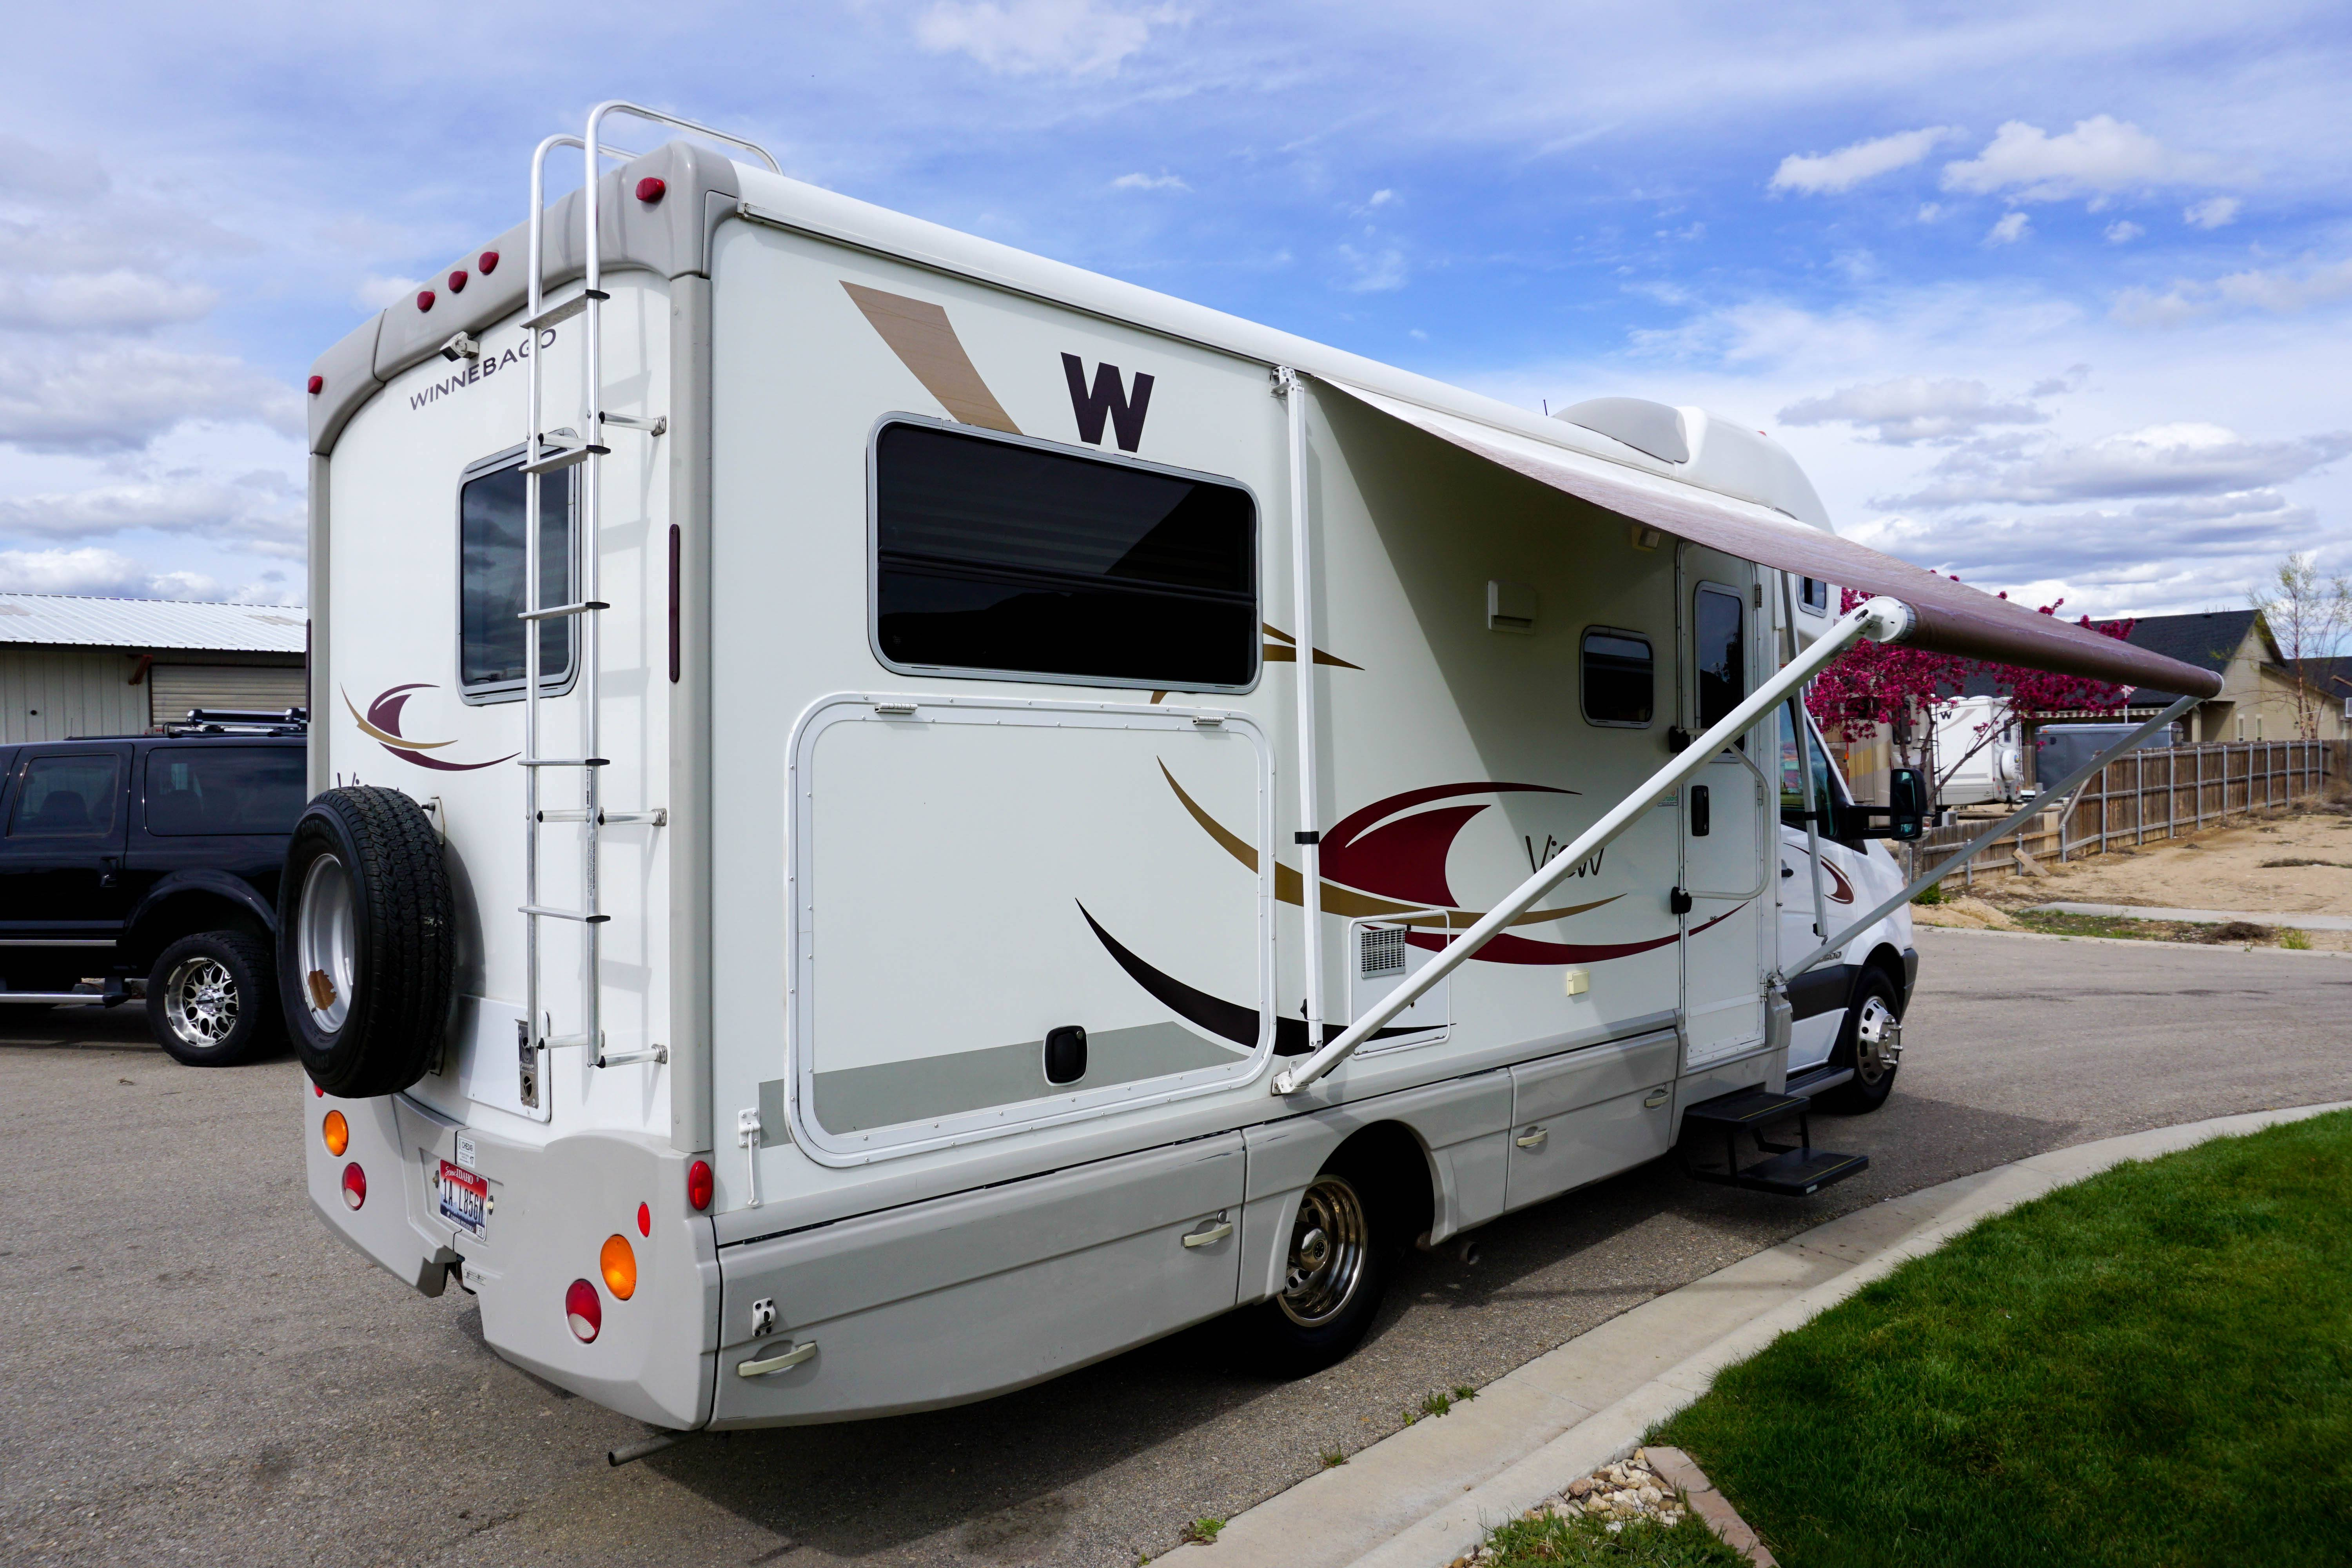 Lastest A Lot Of People In This Area Are Buying RVs Because Theyre Living In Them Because Rent Is So High  On 13 Acres, 450 RVs Are On Display, Ranging From The Class A